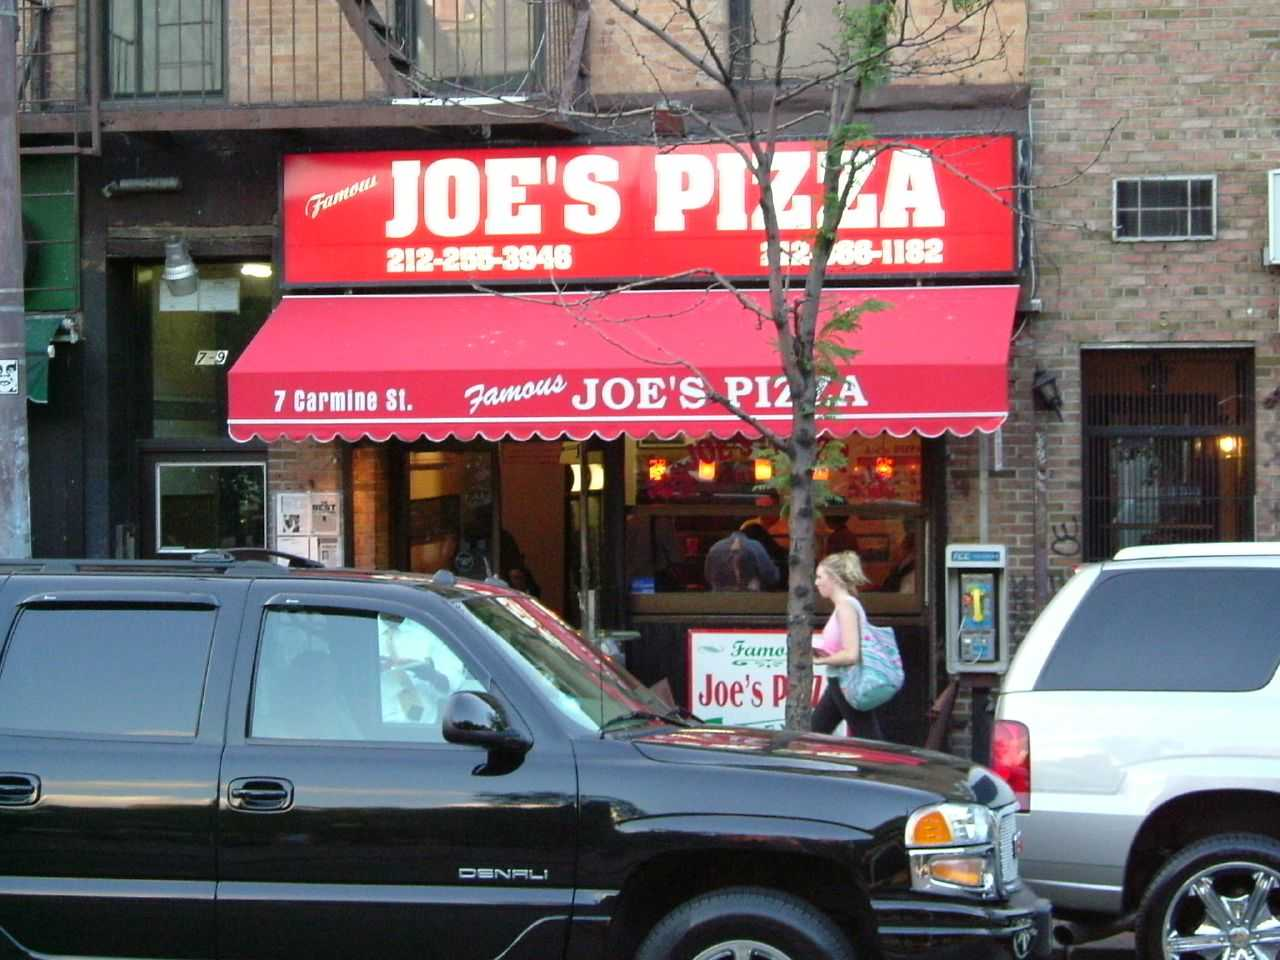 """""""Joe's Pizza (Spiderman)"""" by Rob Young is licensed under CC BY 2.0"""